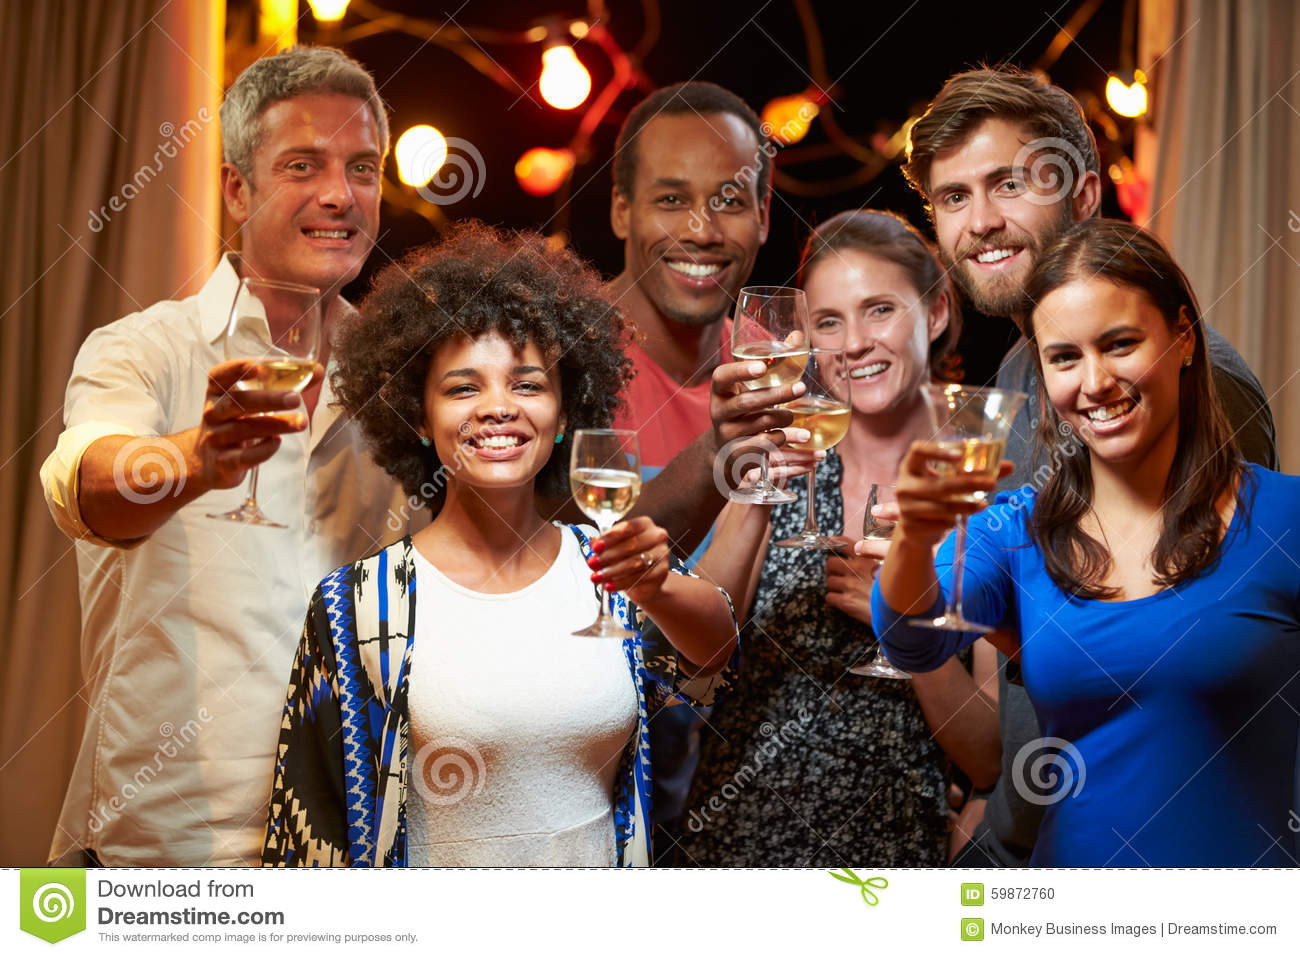 Group of adult friends at party making a toast